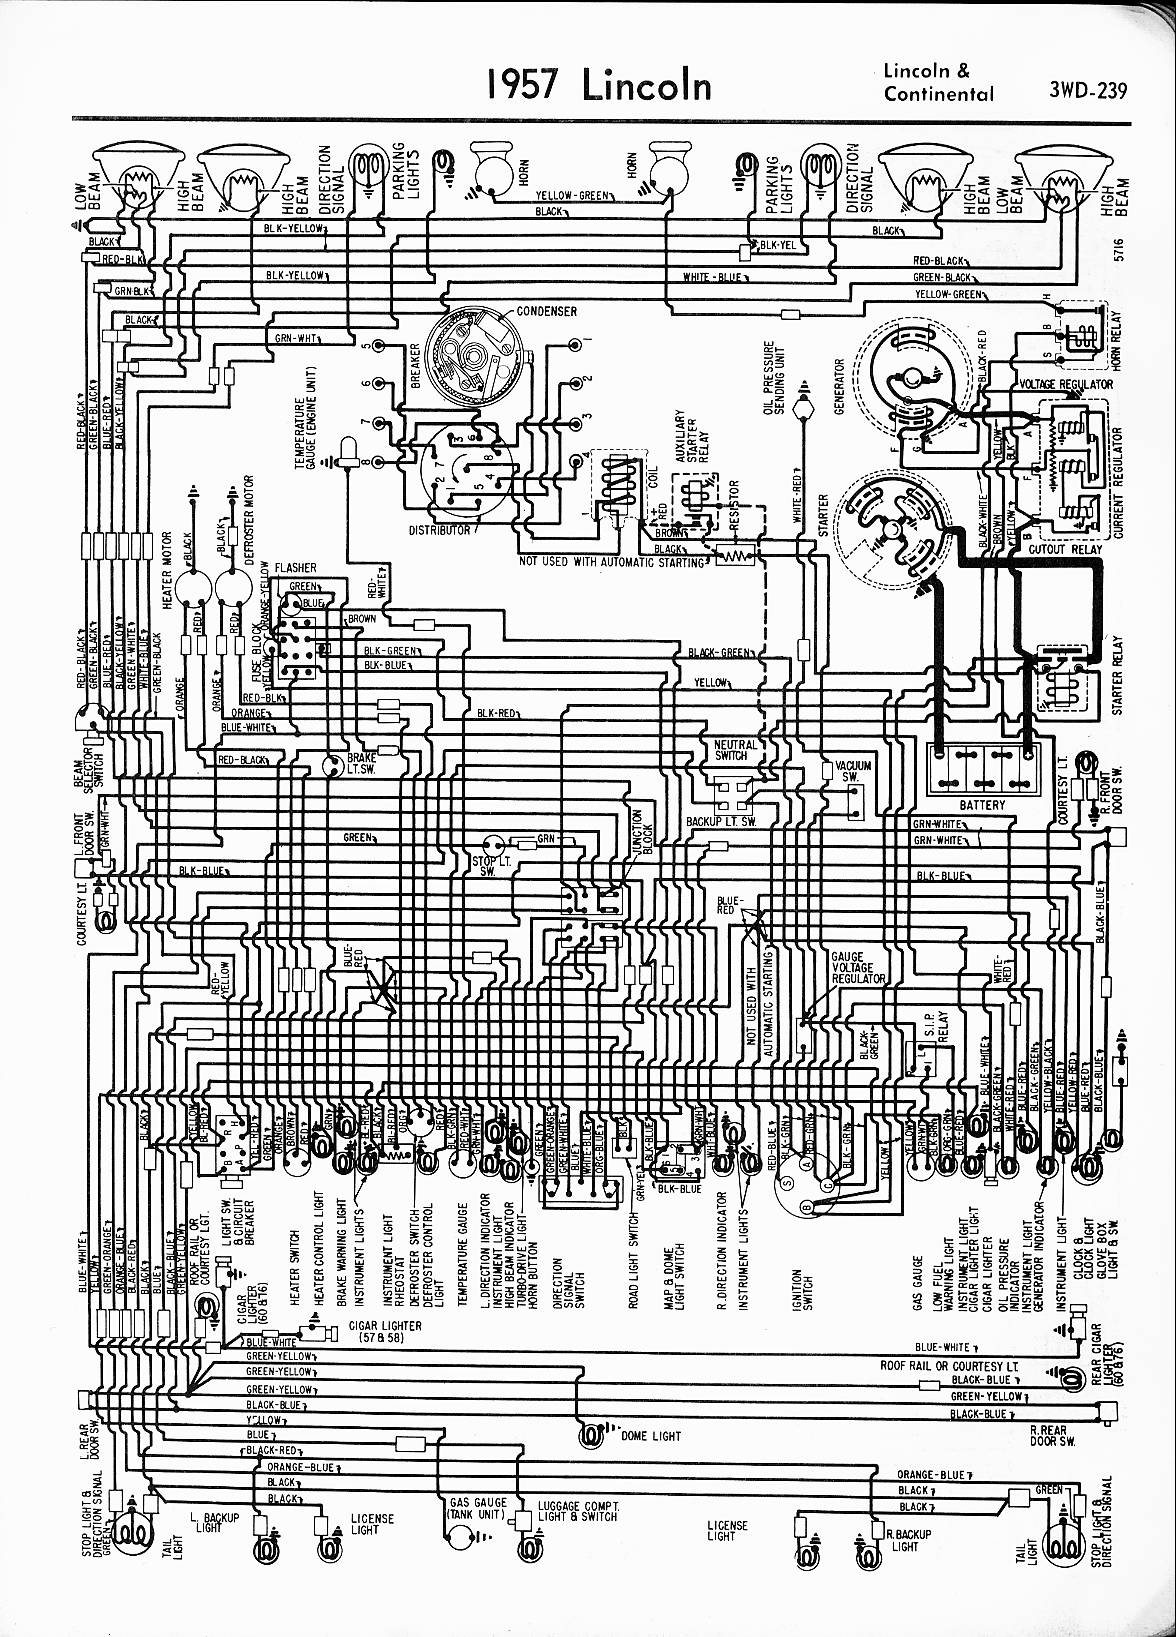 MWireLin_Lin57_z3wd 239z_001 lincoln wiring diagrams 1949 lincoln wiring diagram \u2022 free wiring 6 Pin Plug Wiring Diagram at honlapkeszites.co